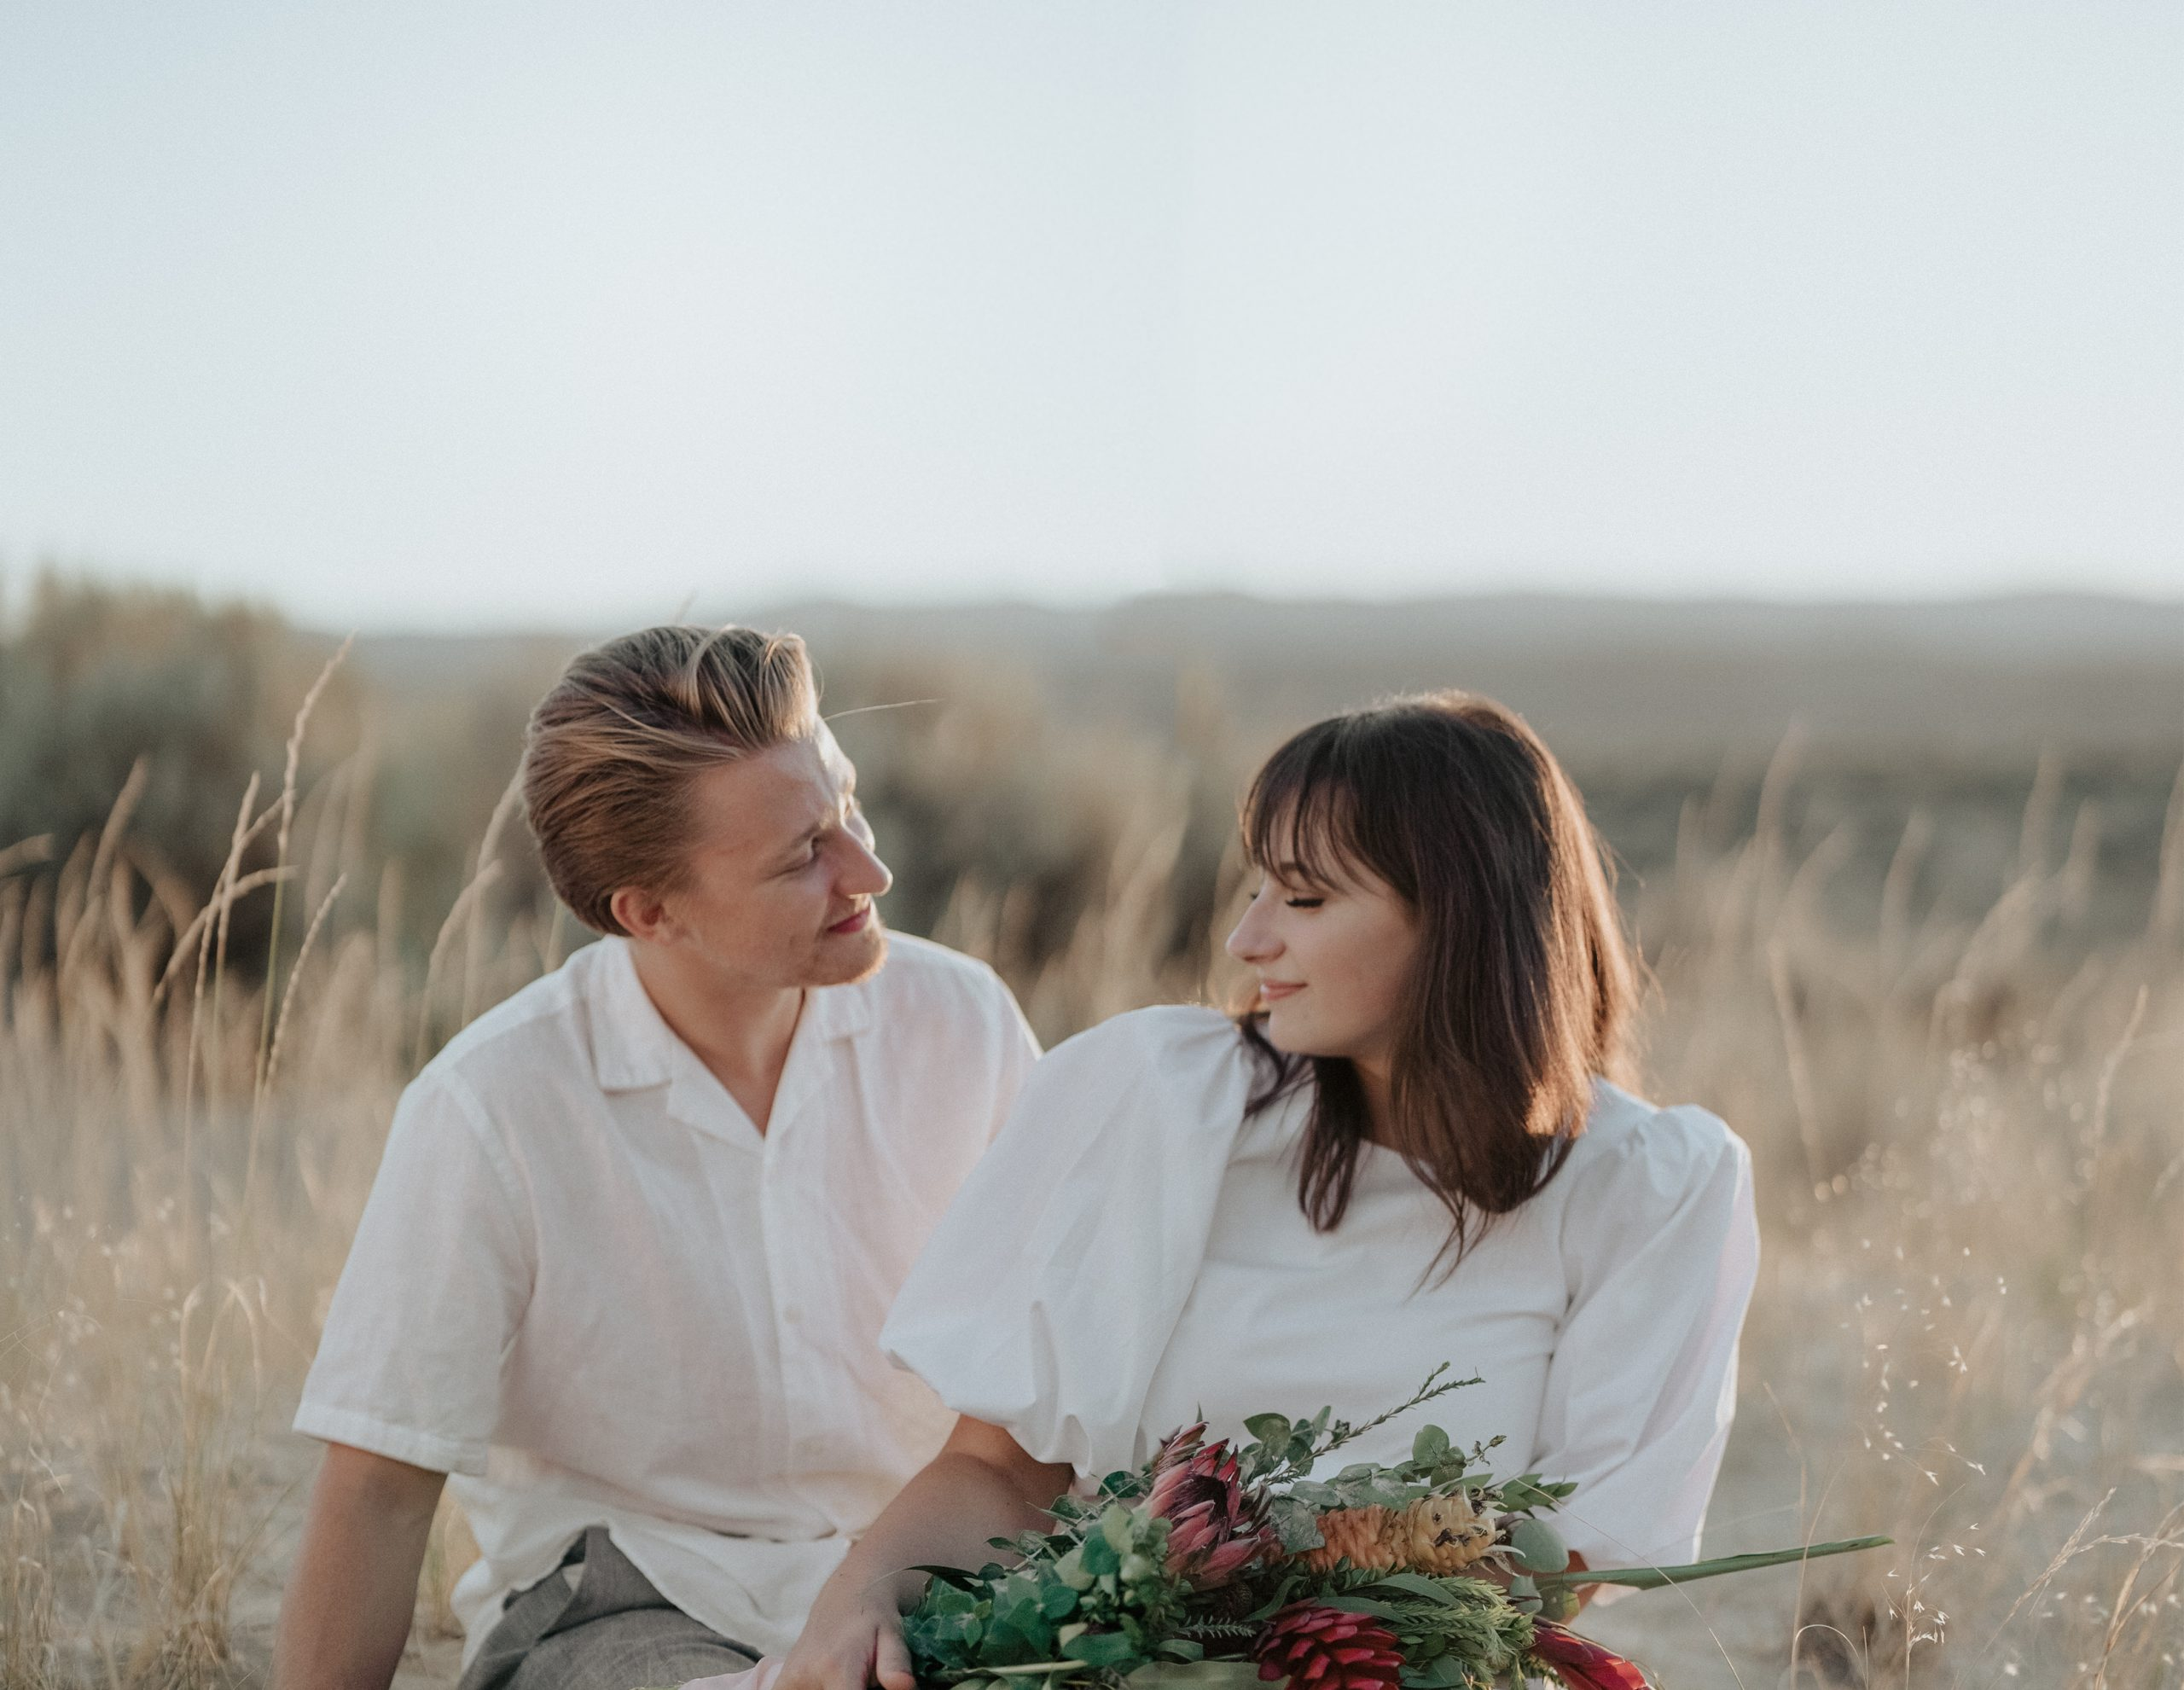 Smiling couple on grassy meadow in nature